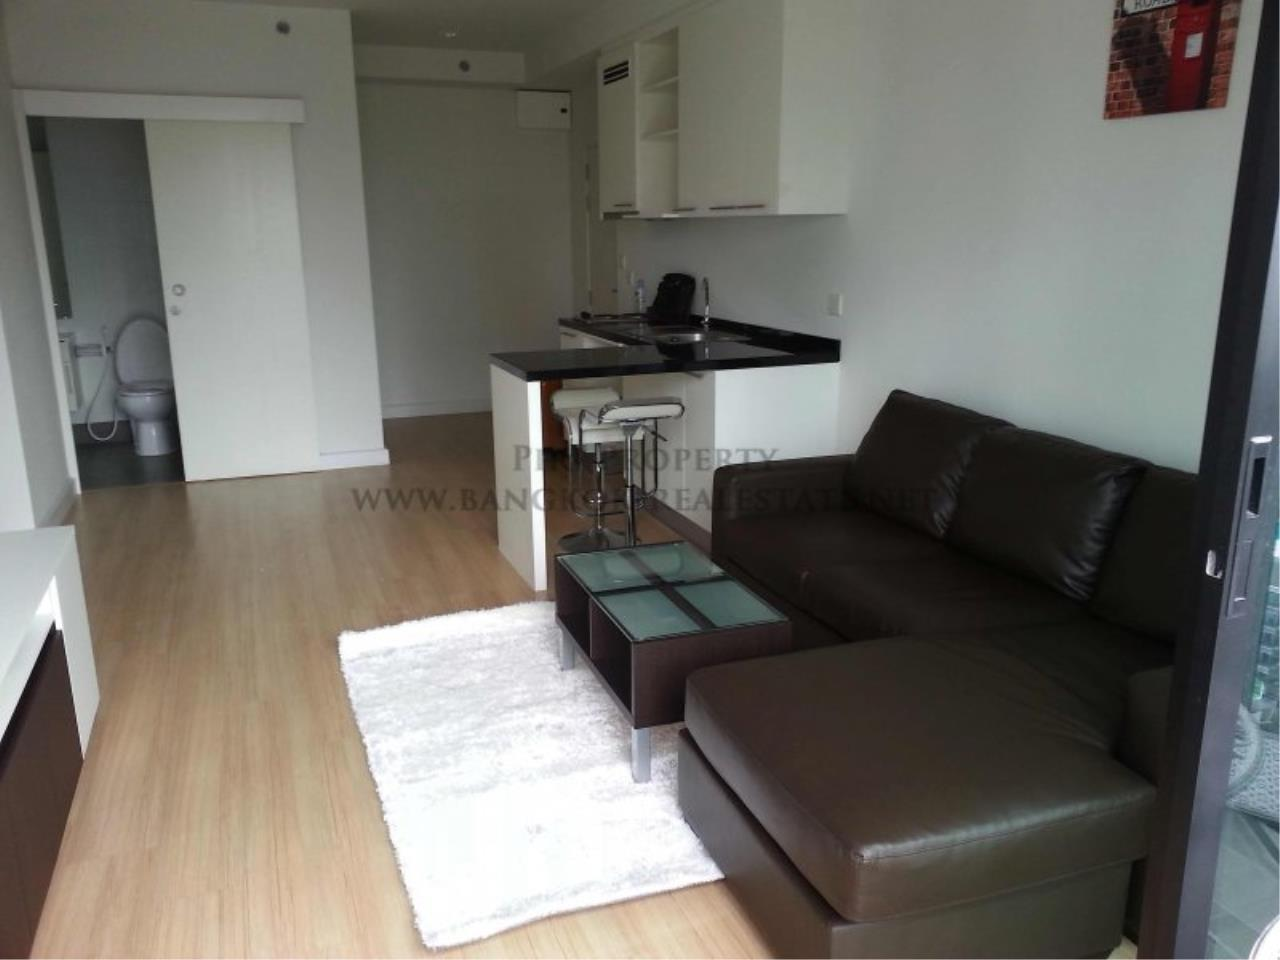 Piri Property Agency's High Floor Condo n the Seed Mingle - 2 Bedroom for Rent 1